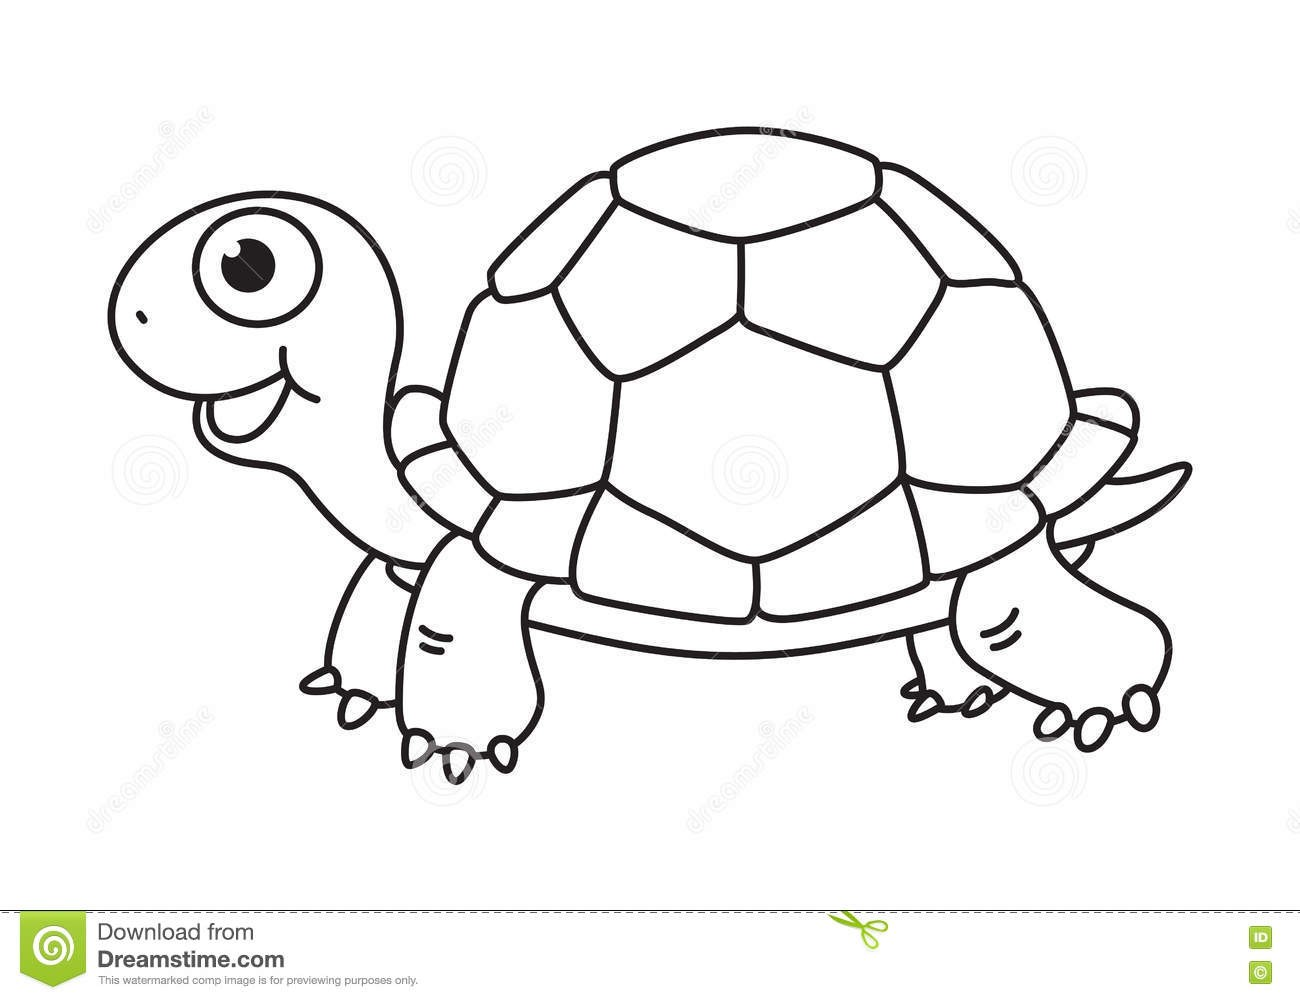 Turtle black and.